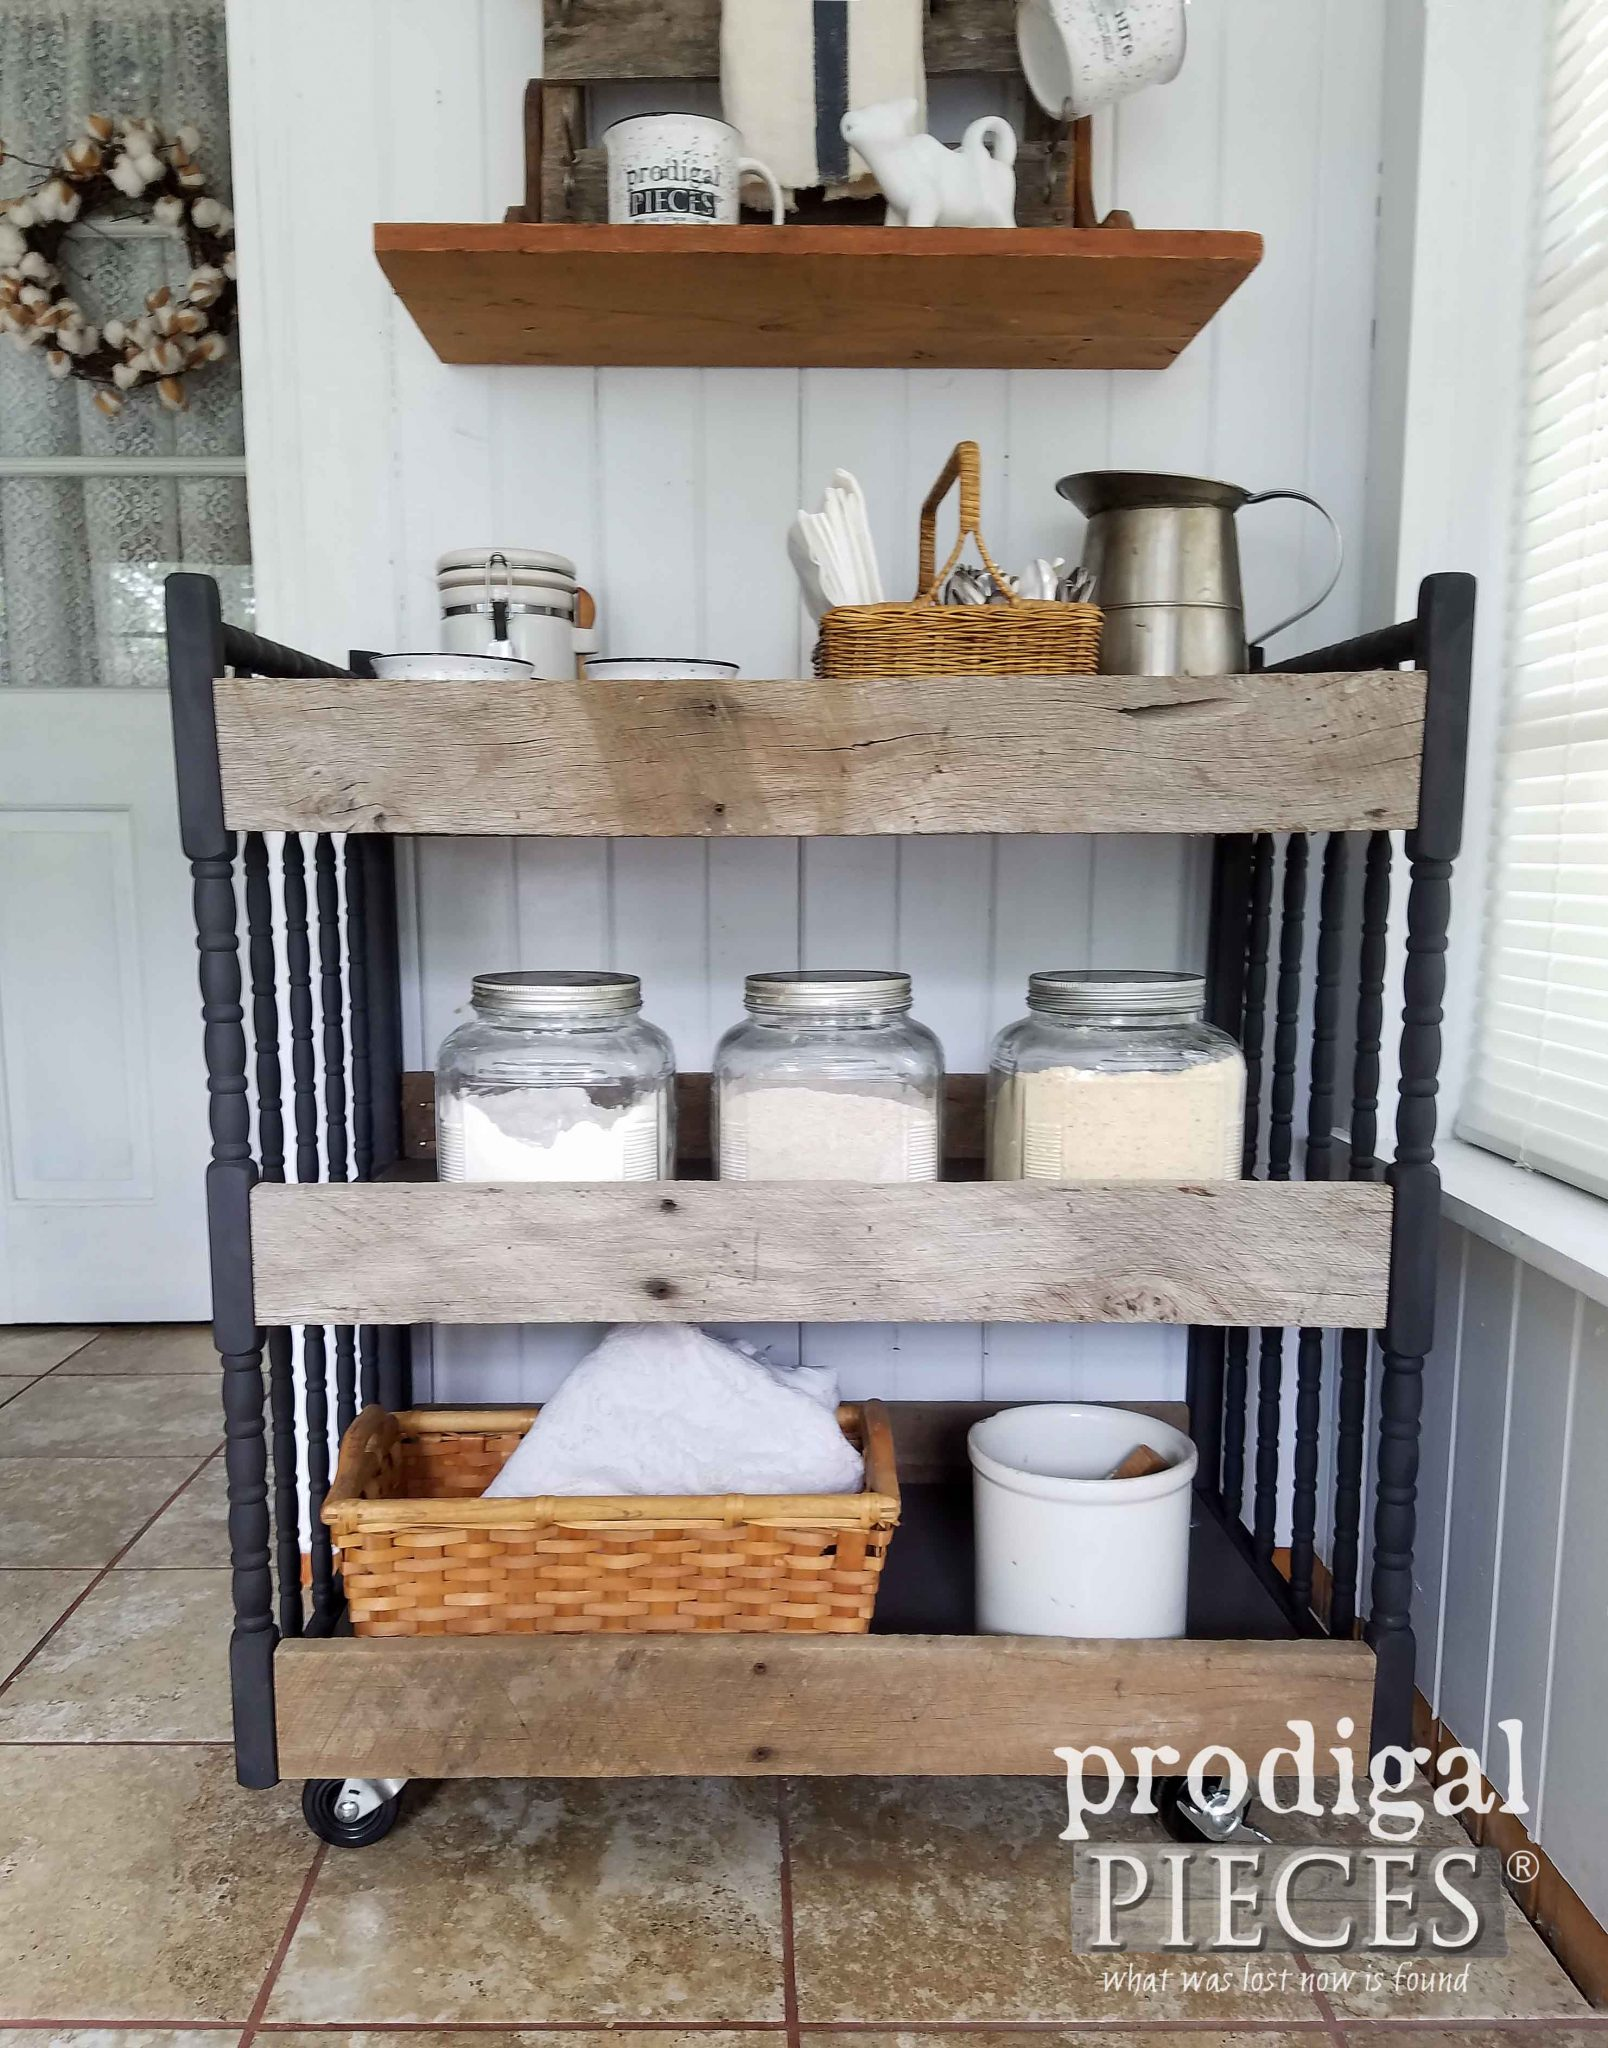 Farmhouse Style Cart made from Upcycled Materials by Prodigal Pieces | prodigalpieces.com